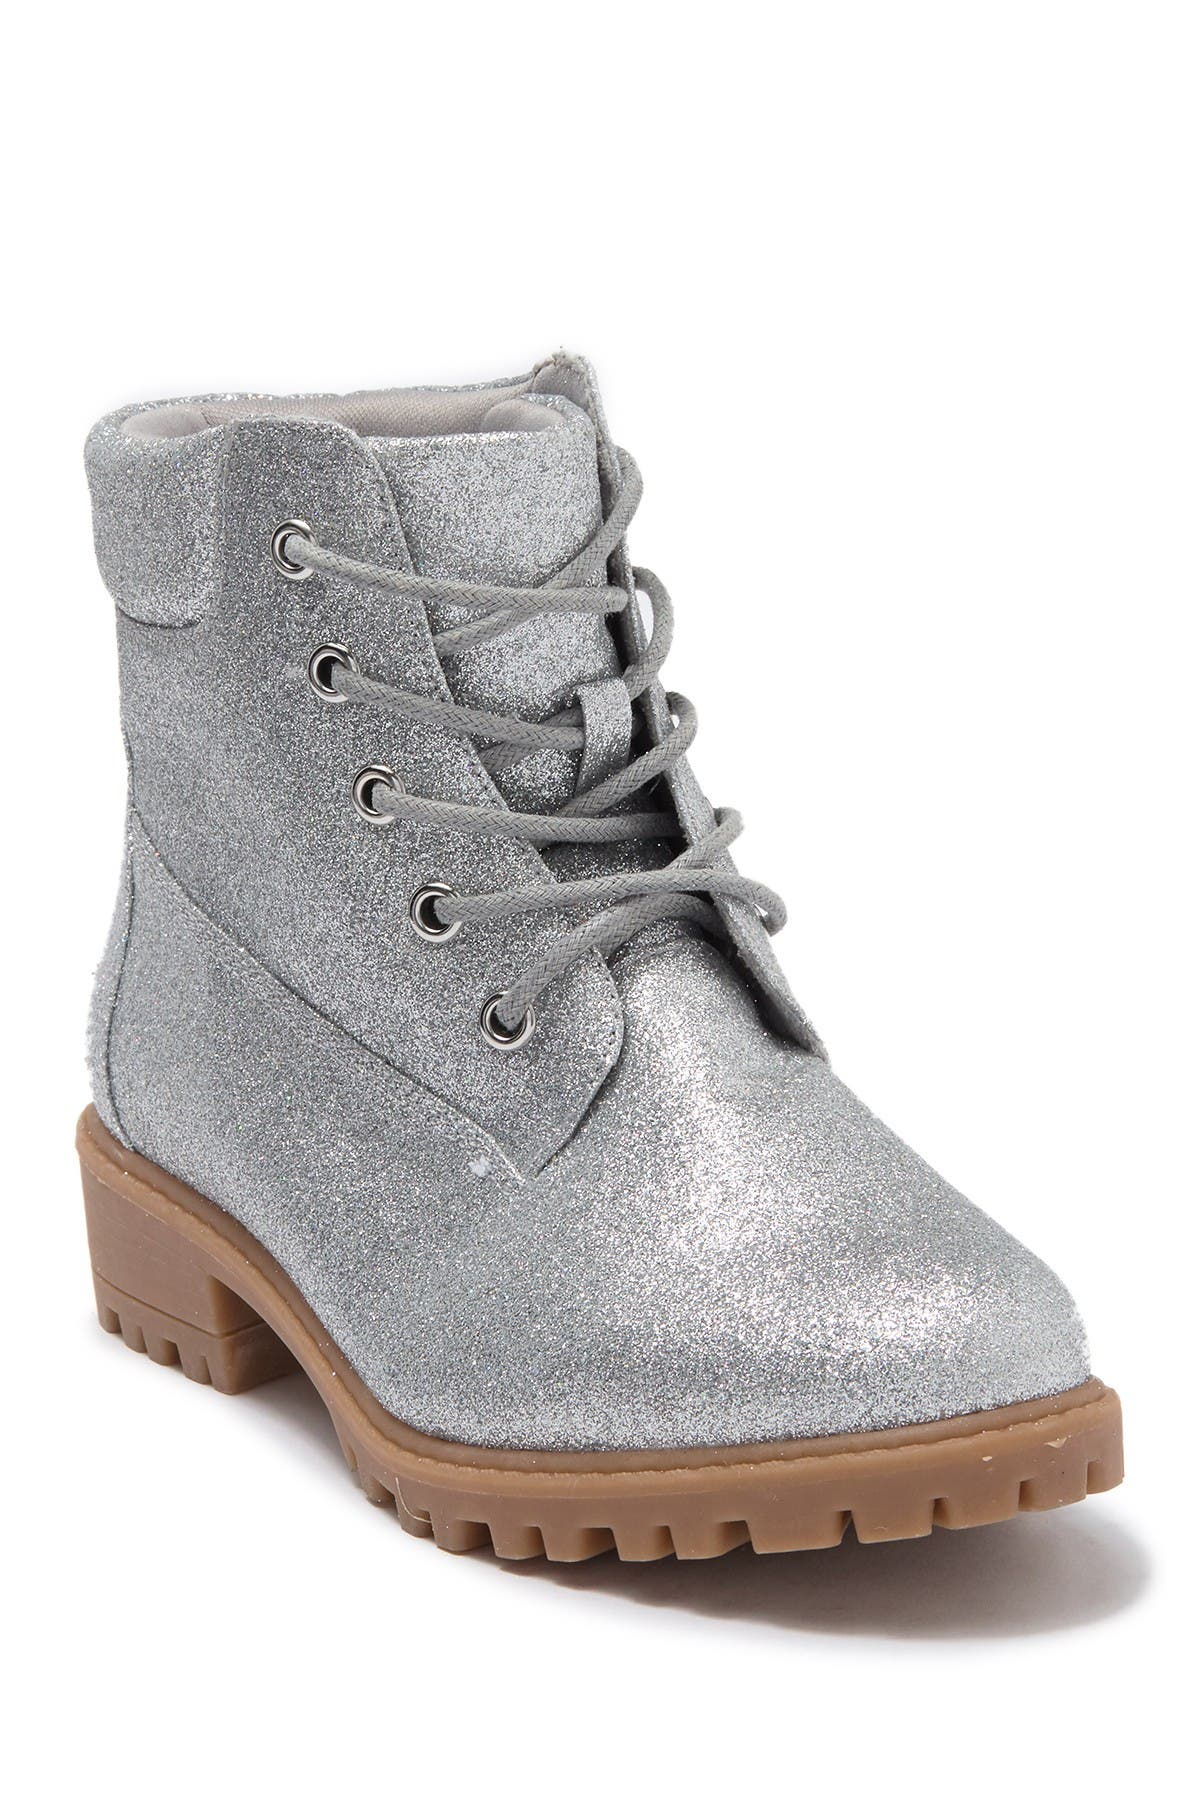 Image of MIA Glitter Hiker Lace Up Boot